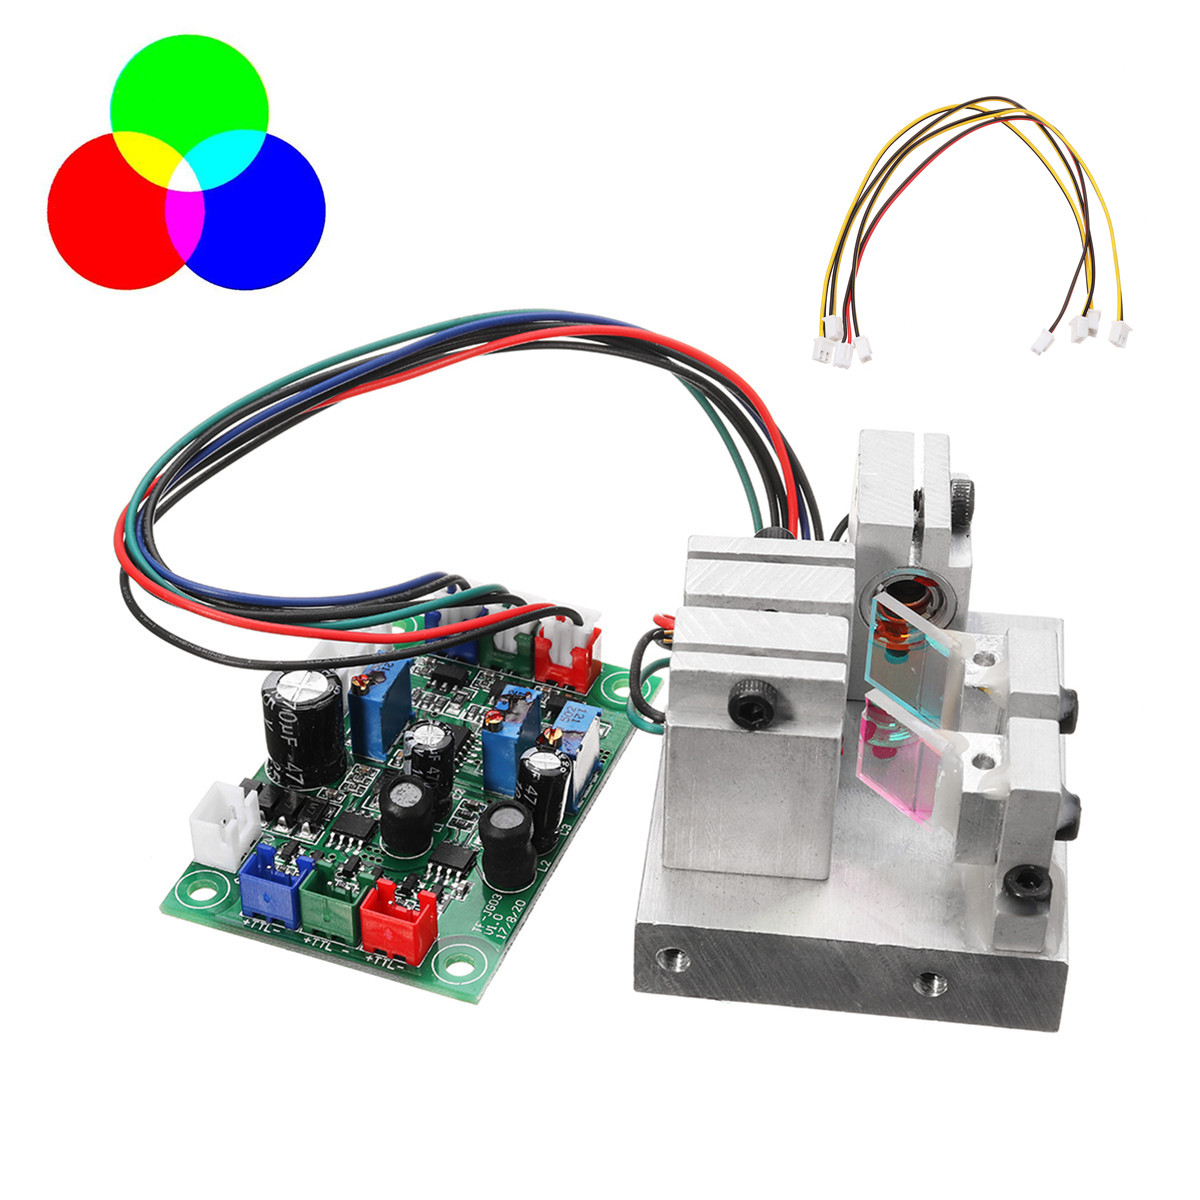 RGB 300mW White Laser Module 638nm+520nm+450nm With TTL Driver Board Modulation Temperature Protection Precision Science